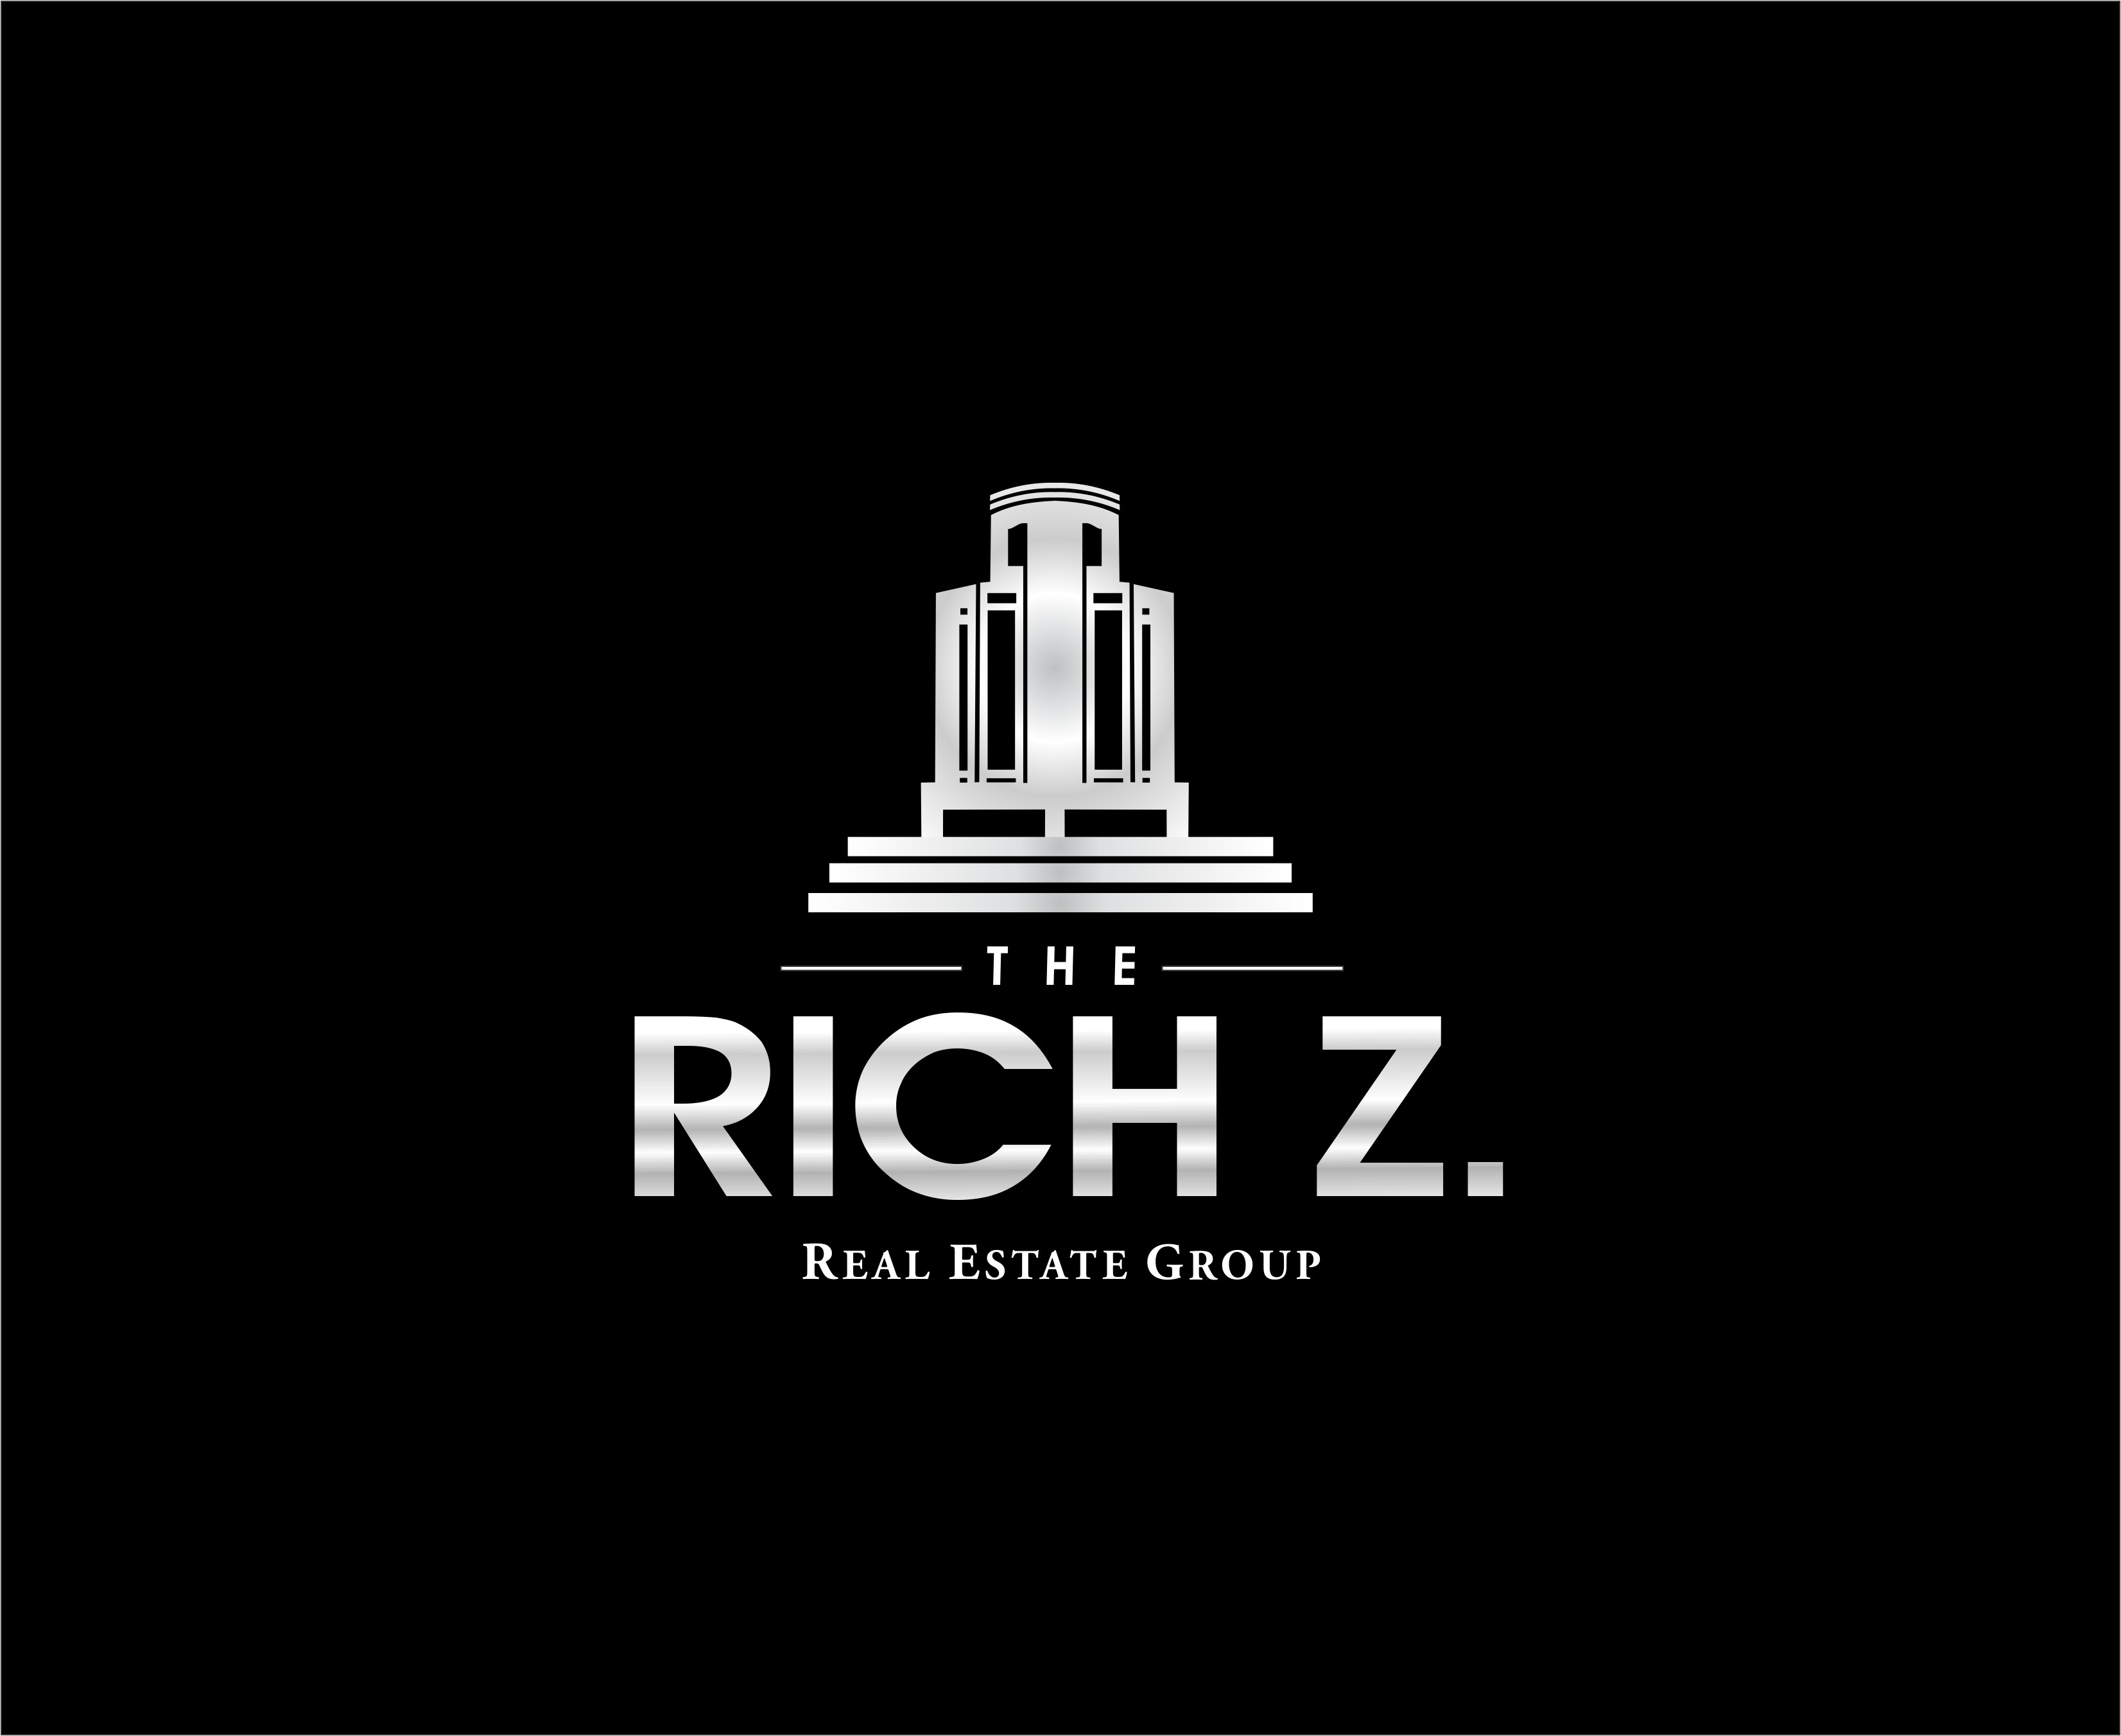 Logo Design by Mhon_Rose - Entry No. 317 in the Logo Design Contest The Rich Z. Real Estate Group Logo Design.